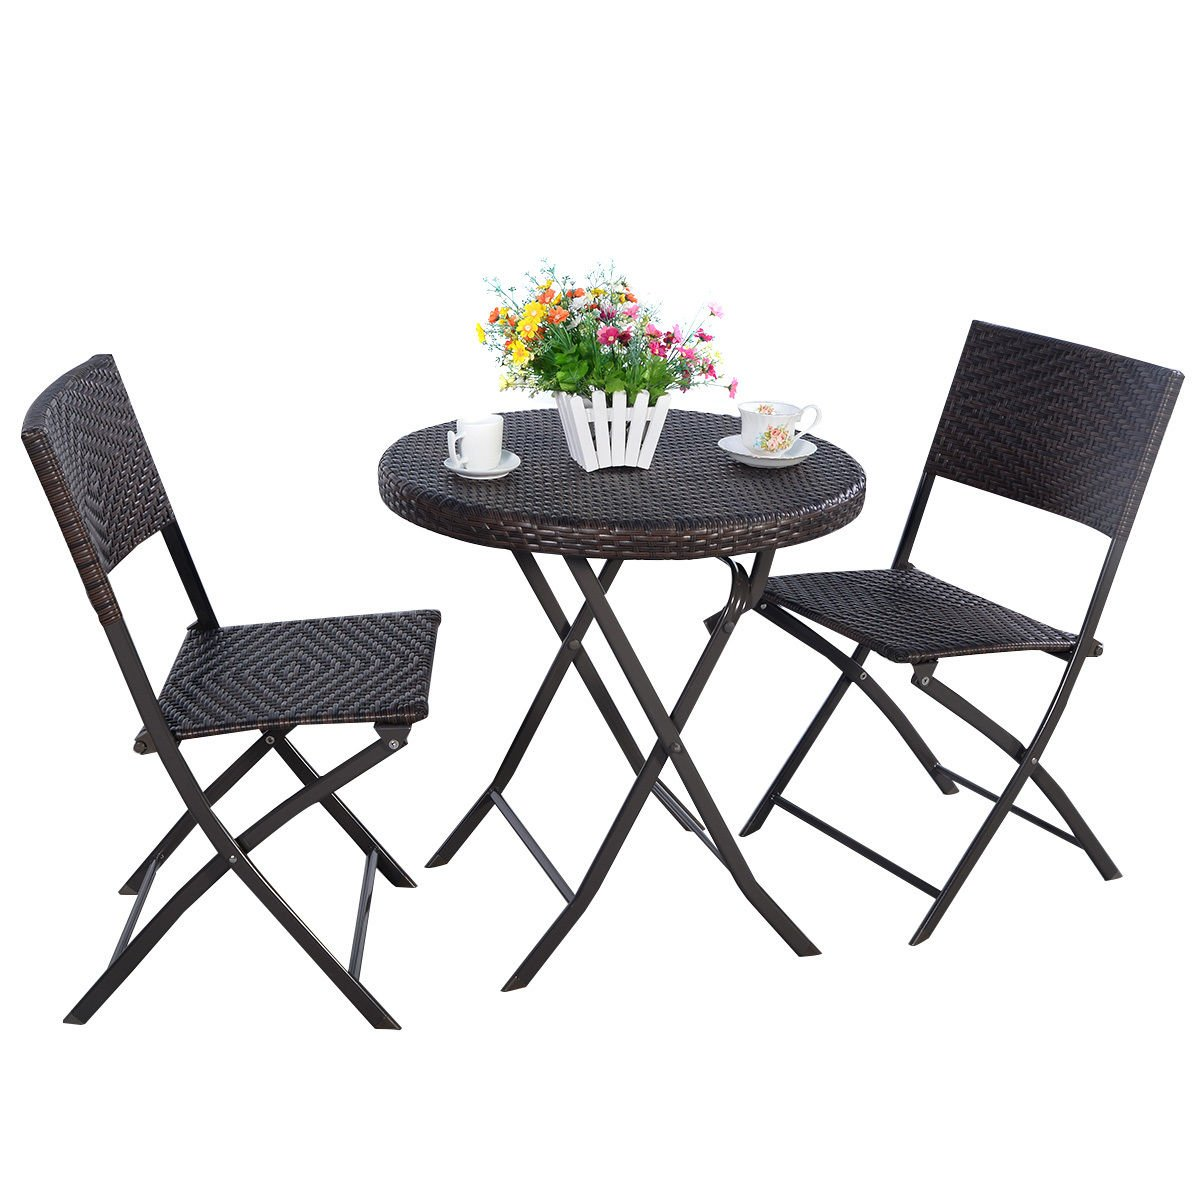 TANGKULA Outdoor Patio Bistro Set Foldable Chairs & Table for Backyard Lawn Balcony Pool Outdoor Modern Rattan Wicker Dining Set Patio Furniture Set Outdoor Patio Conversation Set (round)